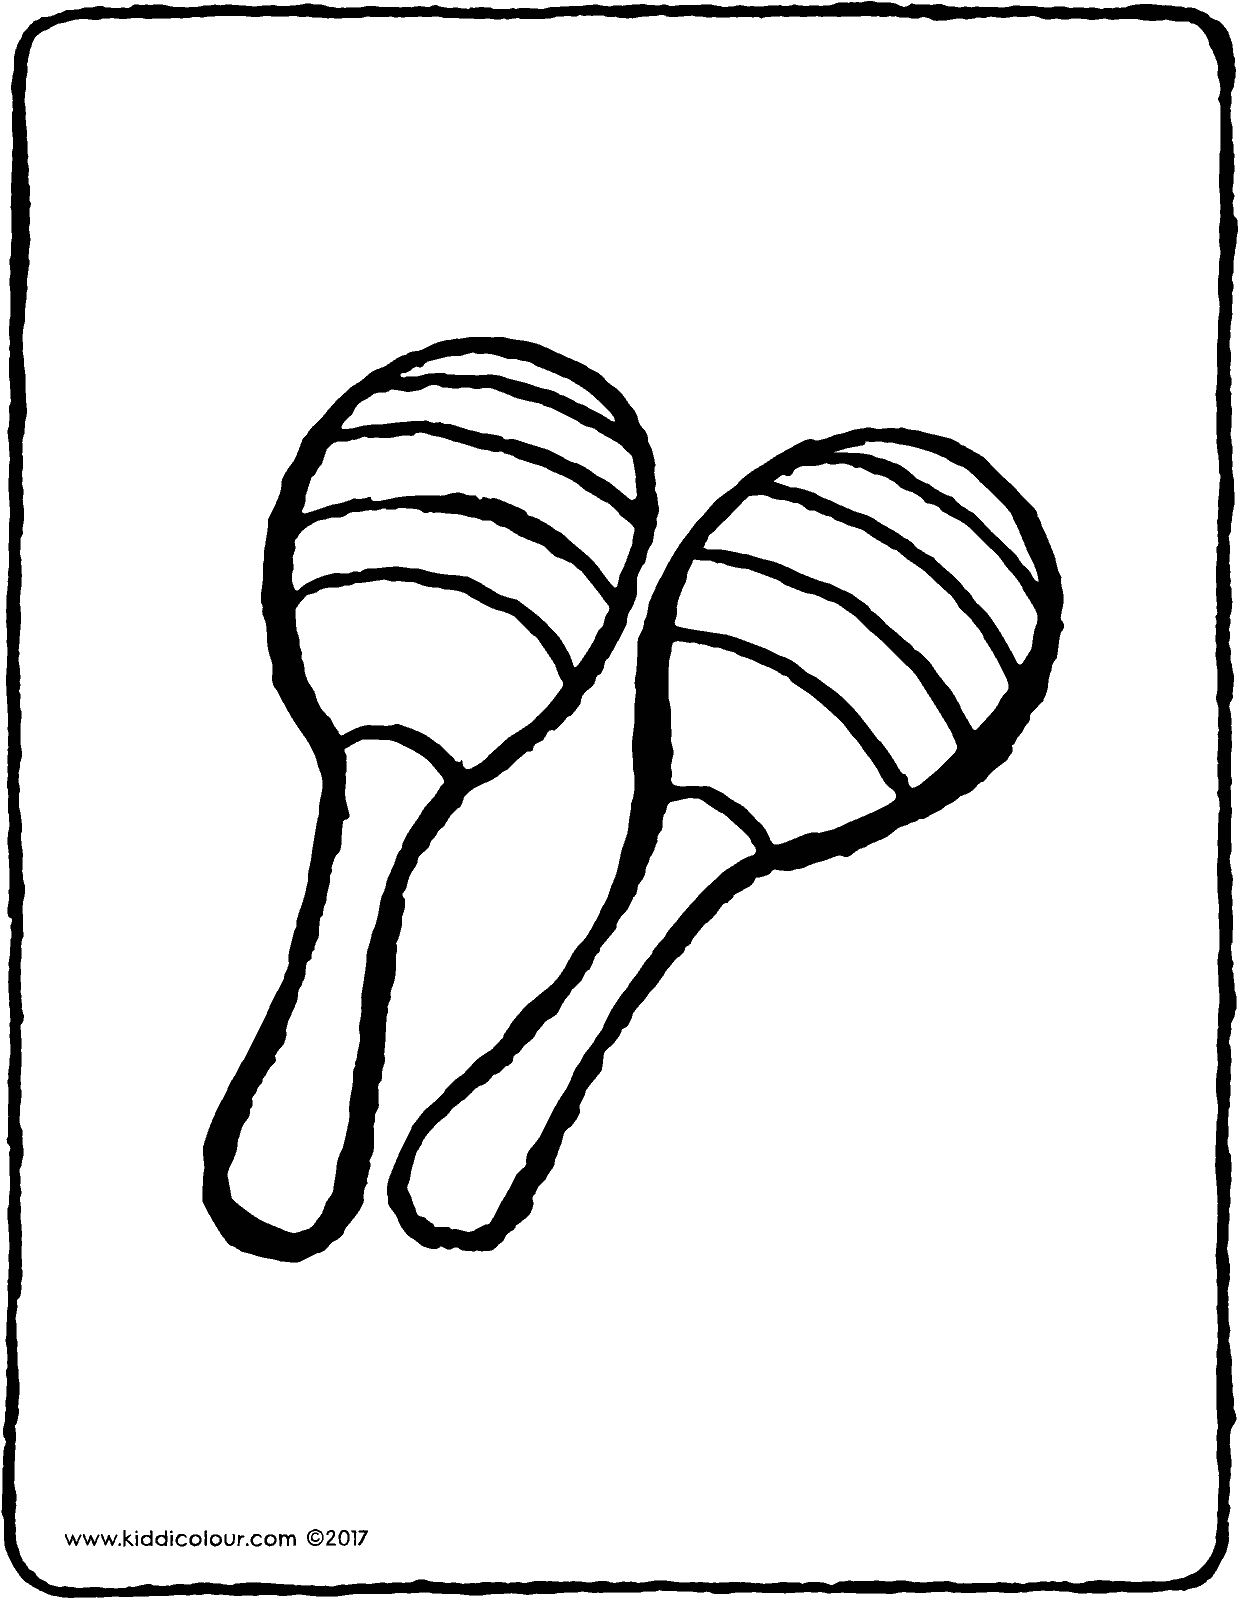 maracas colouring page page drawing picture 01V